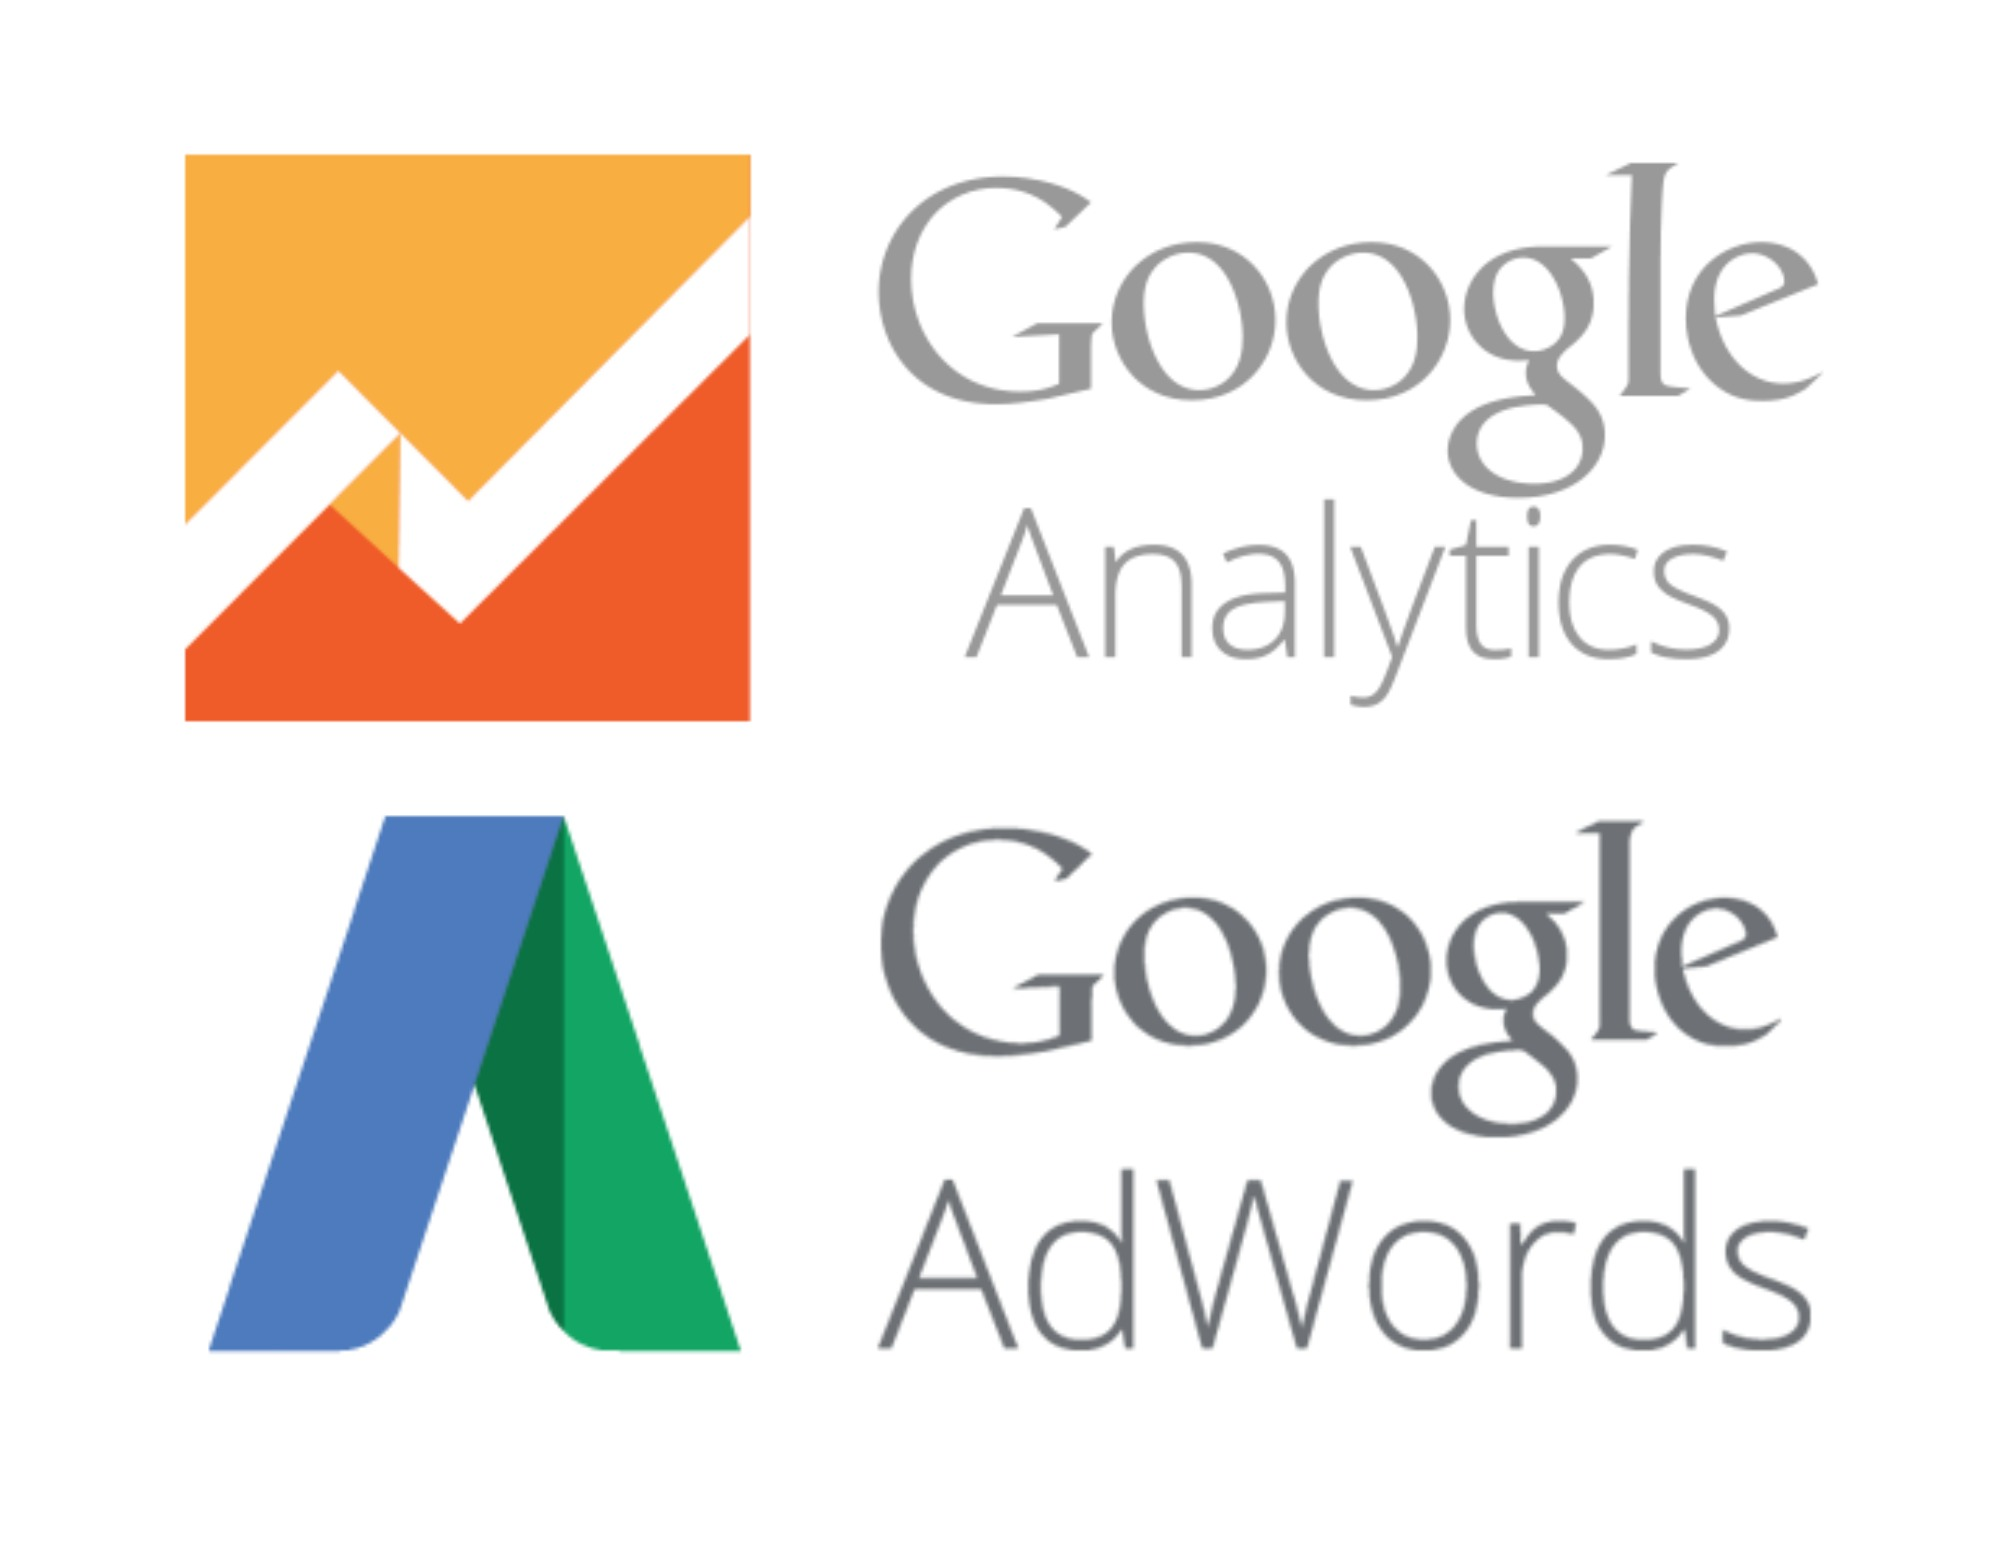 Best Way To Learn Google Adwords - SEO PROS USA